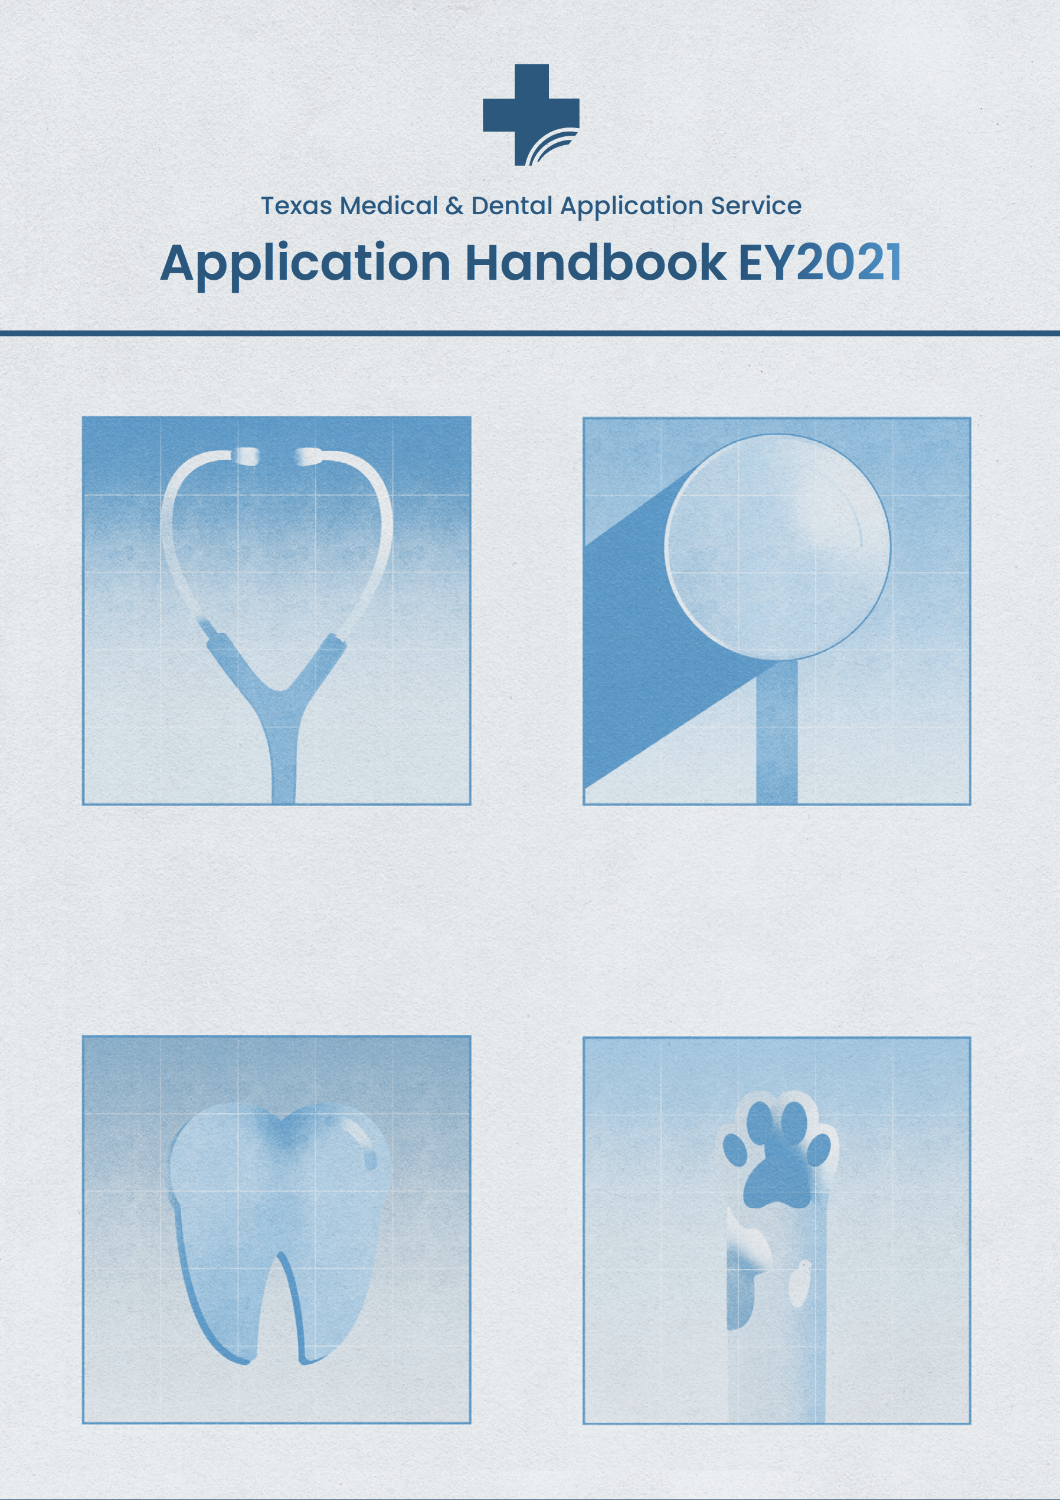 Application Handbook image